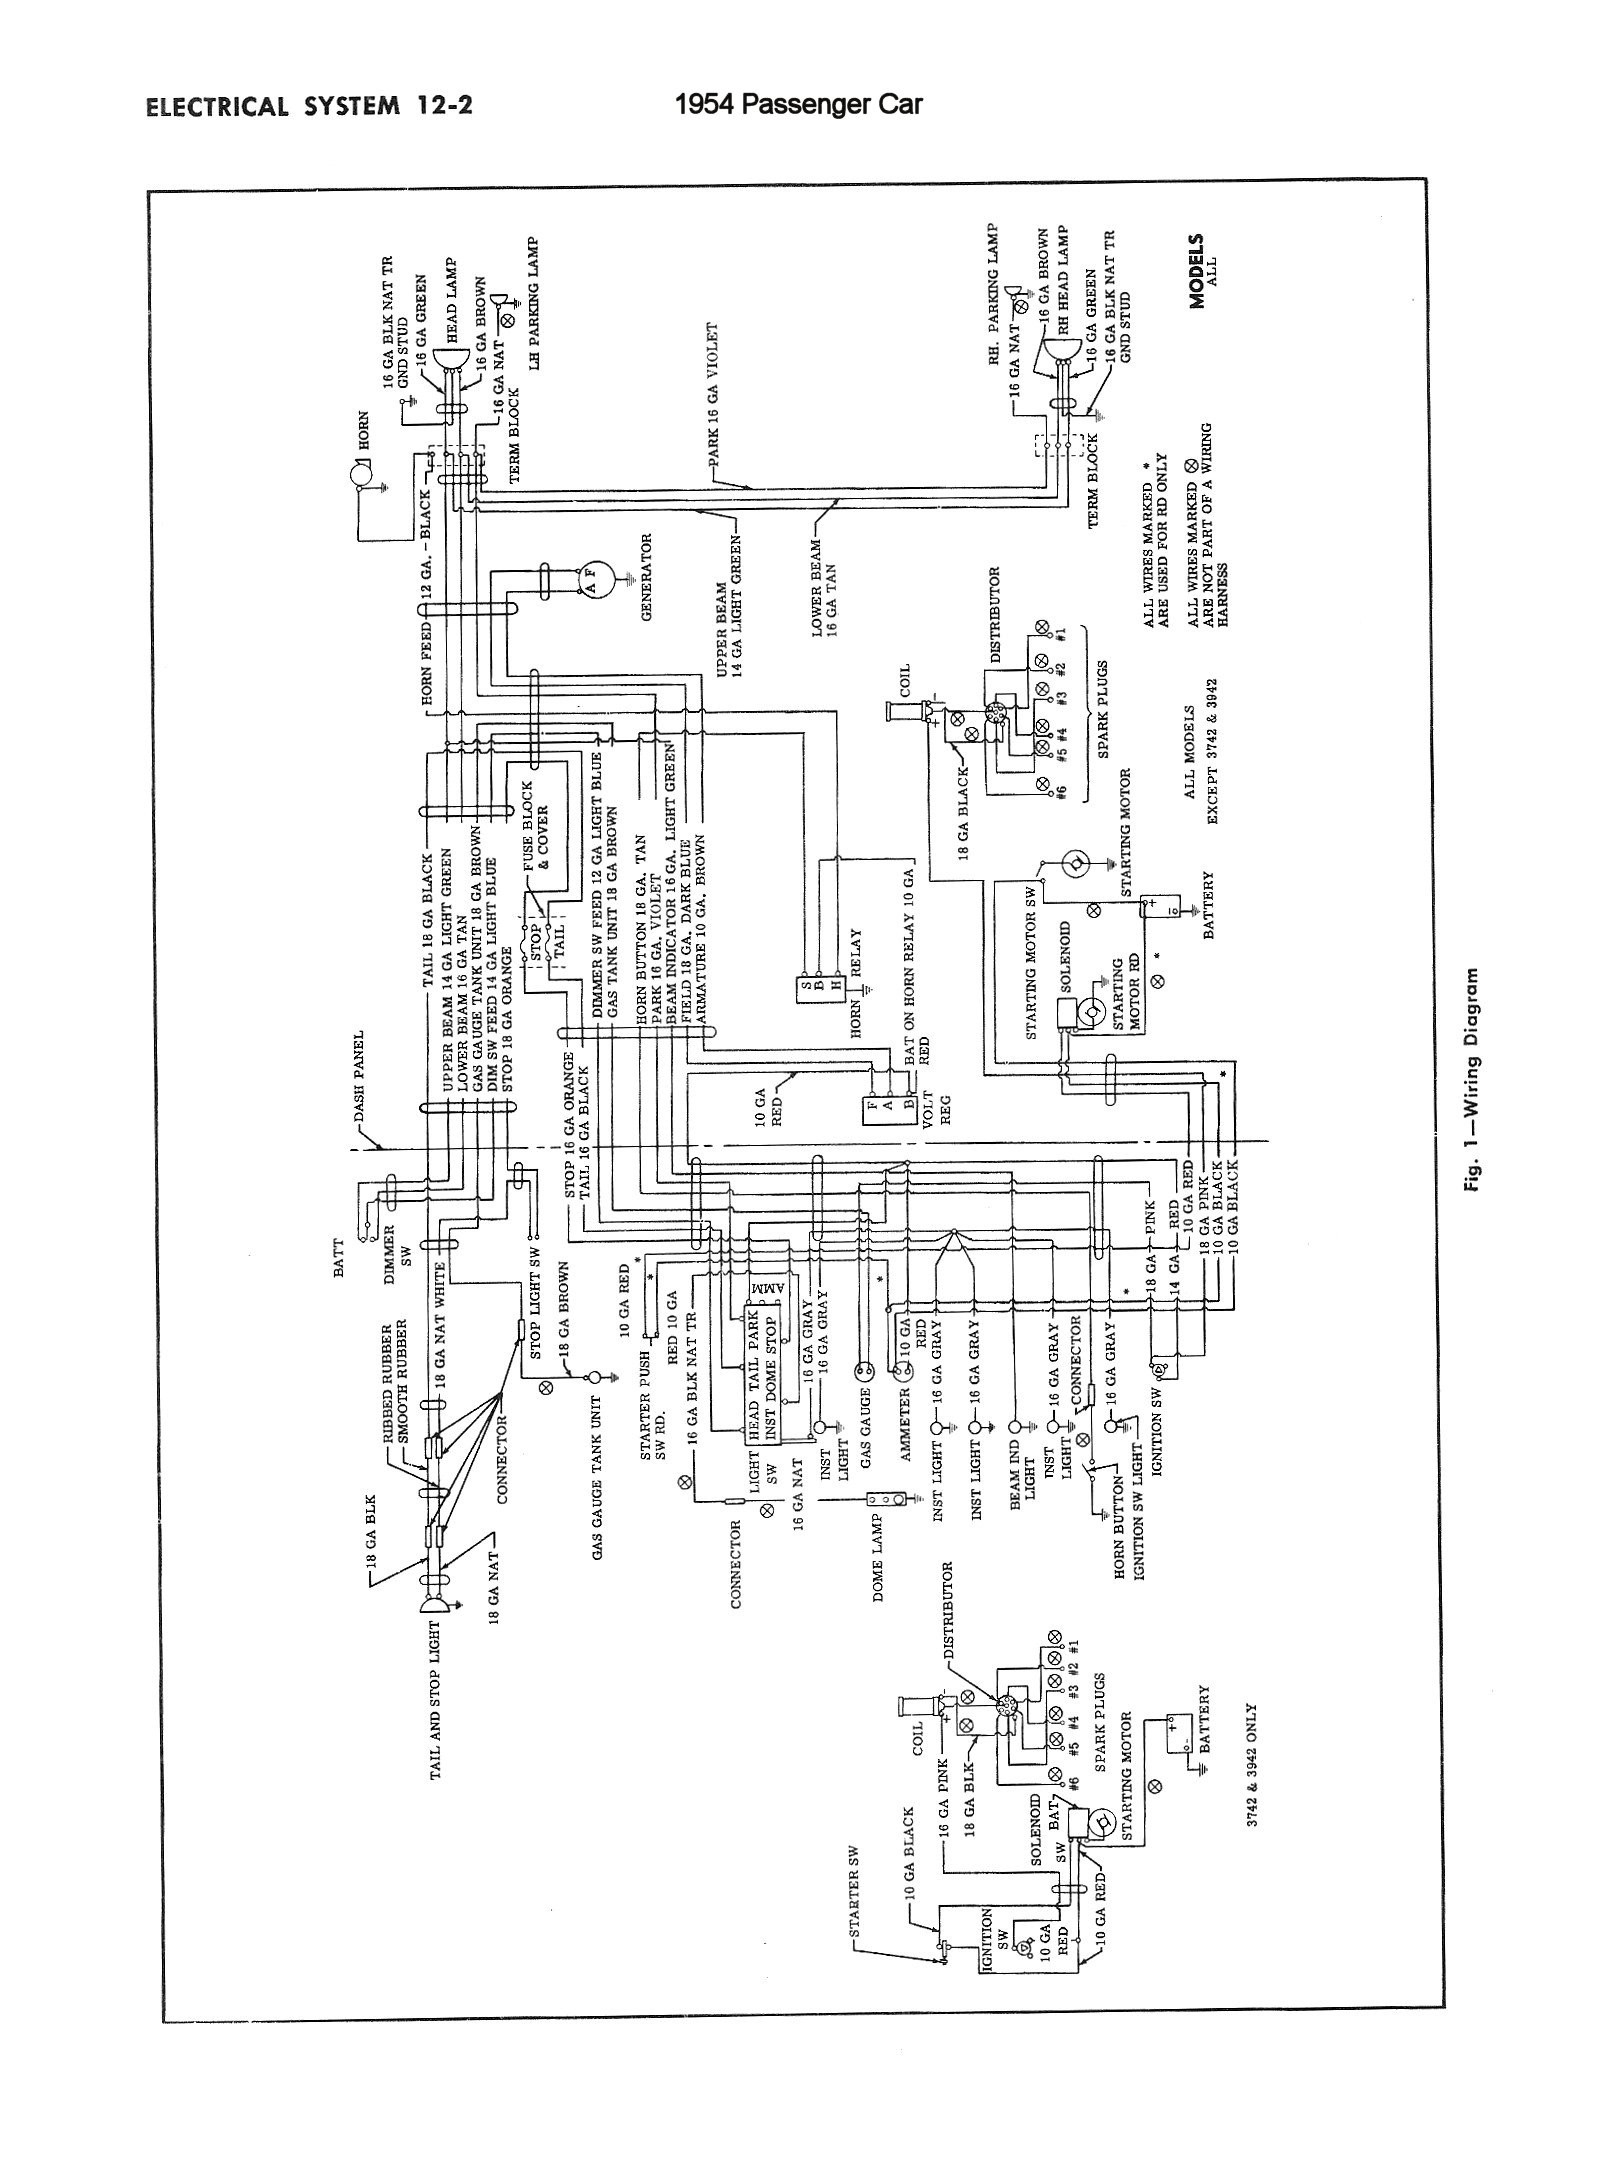 car daylight wiring diagram